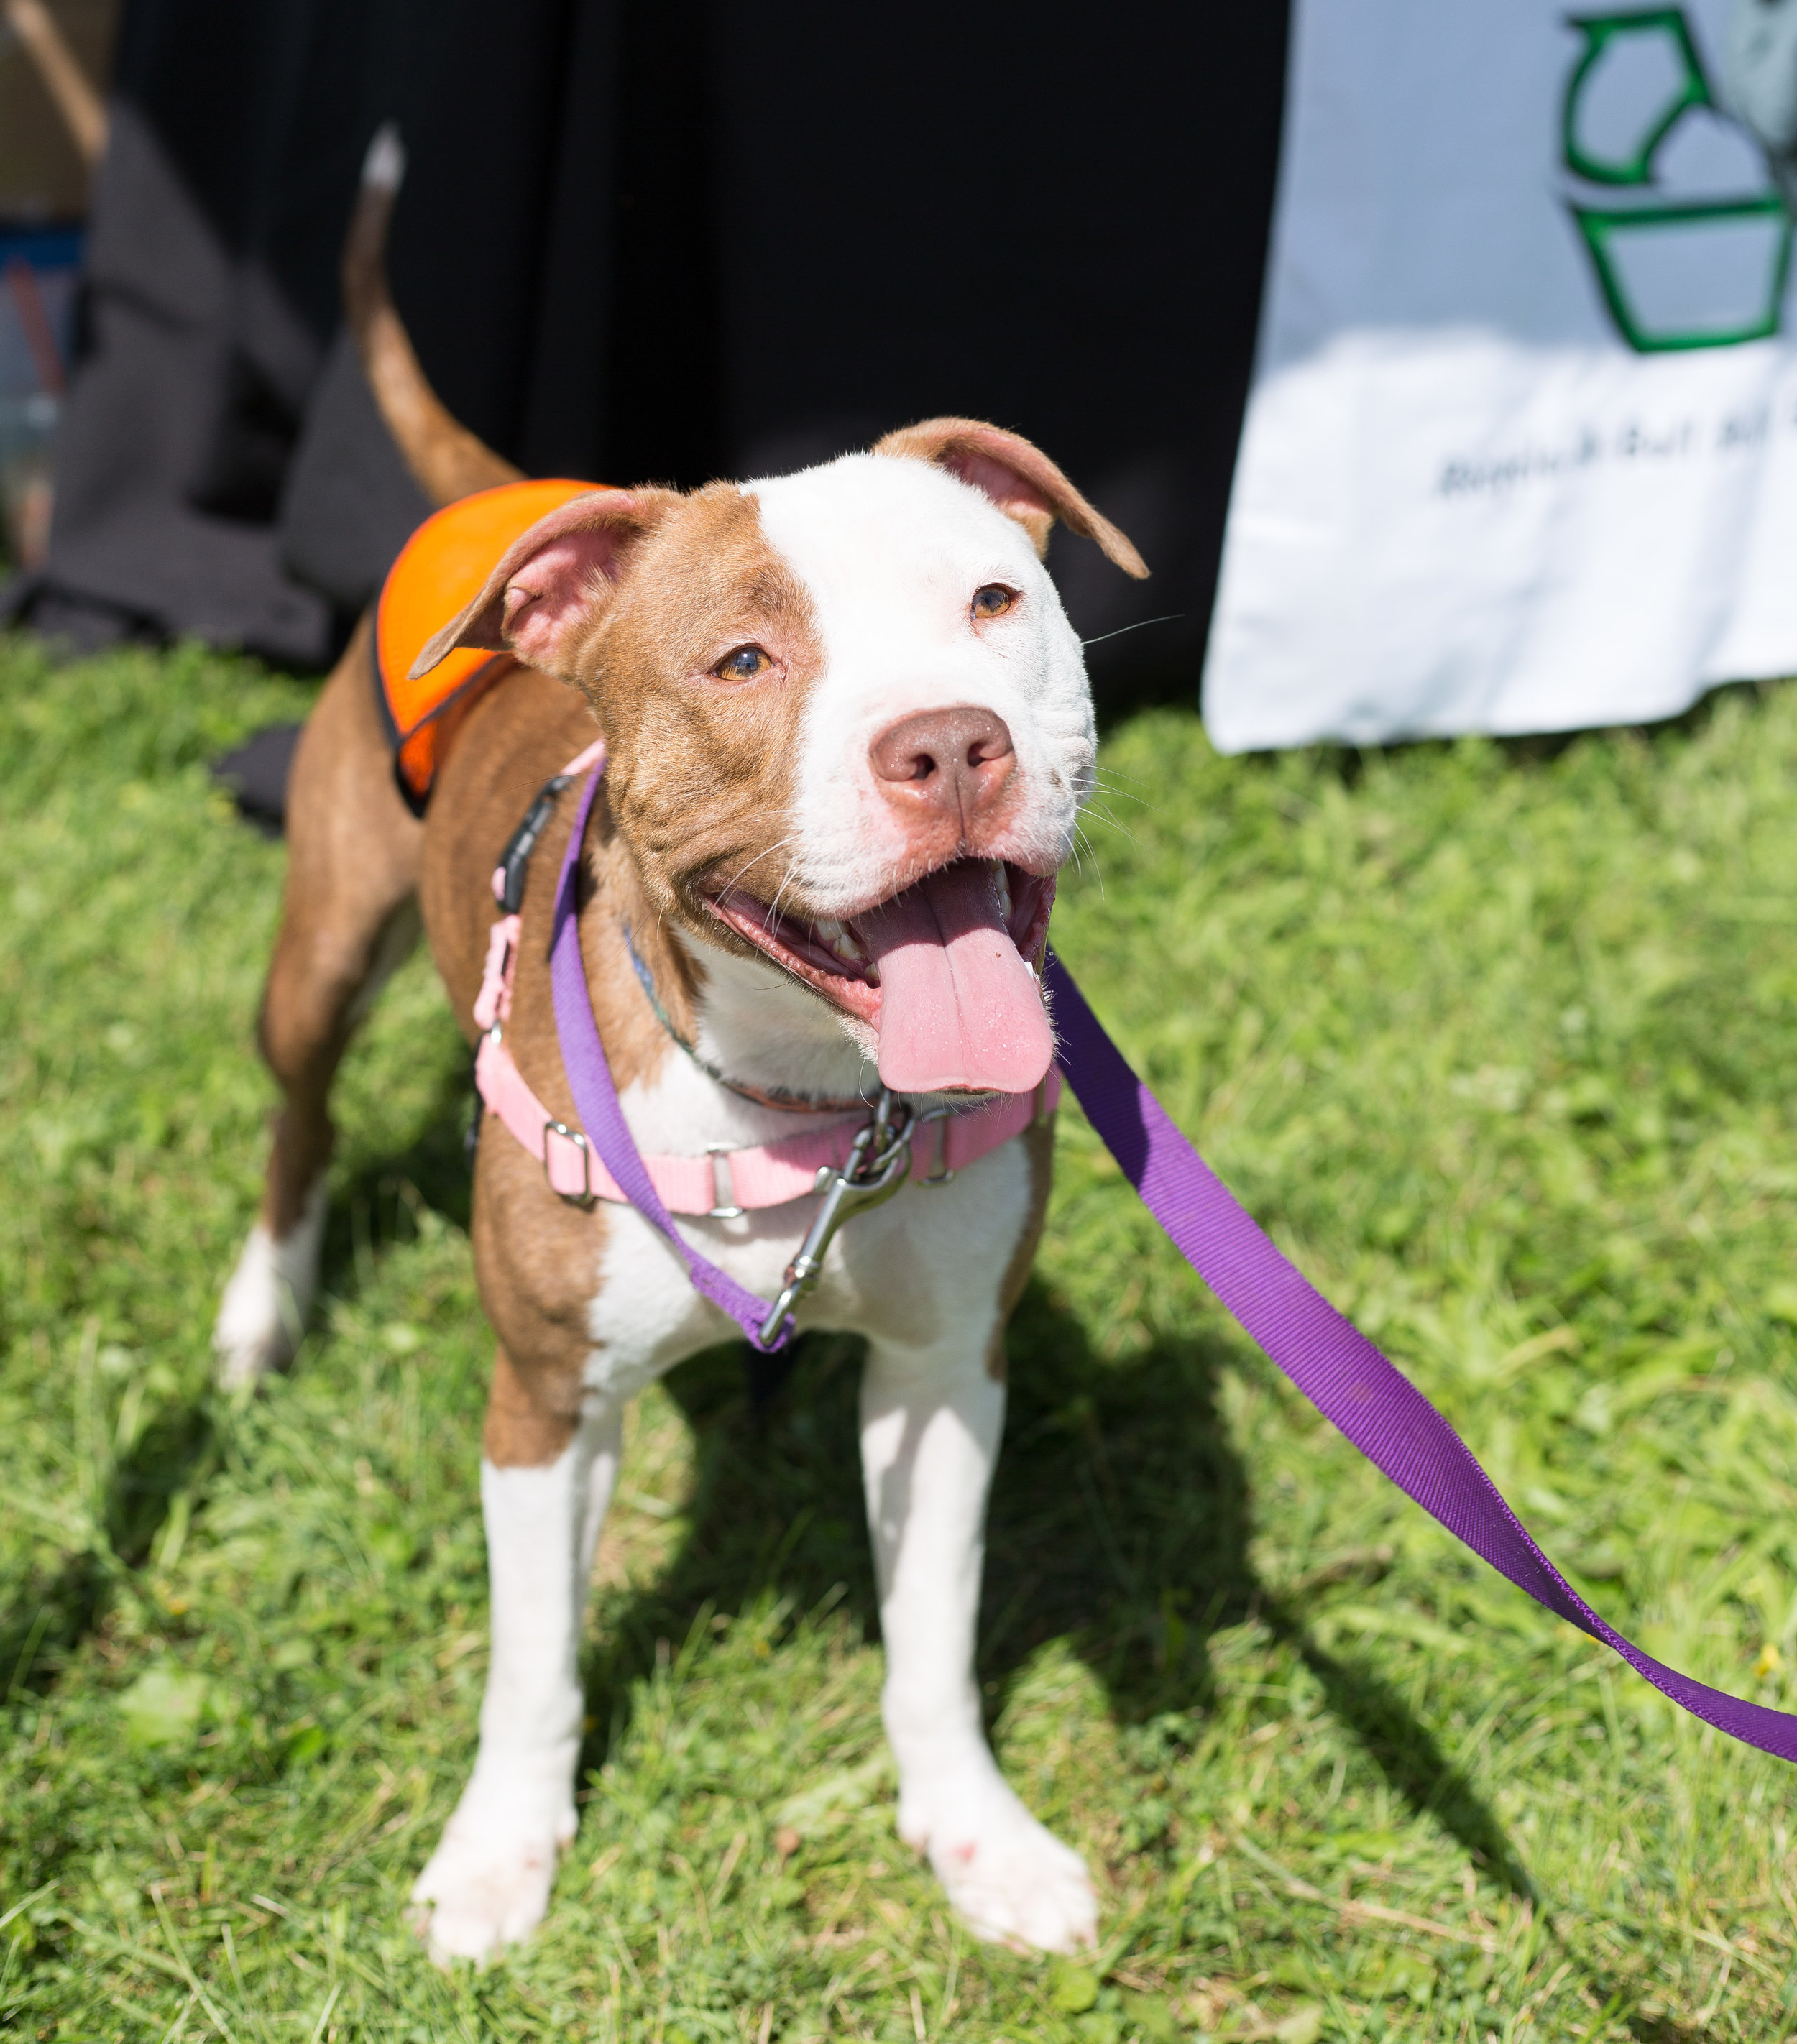 Prim from  Recycle-A-Bull Bully Breed Rescue